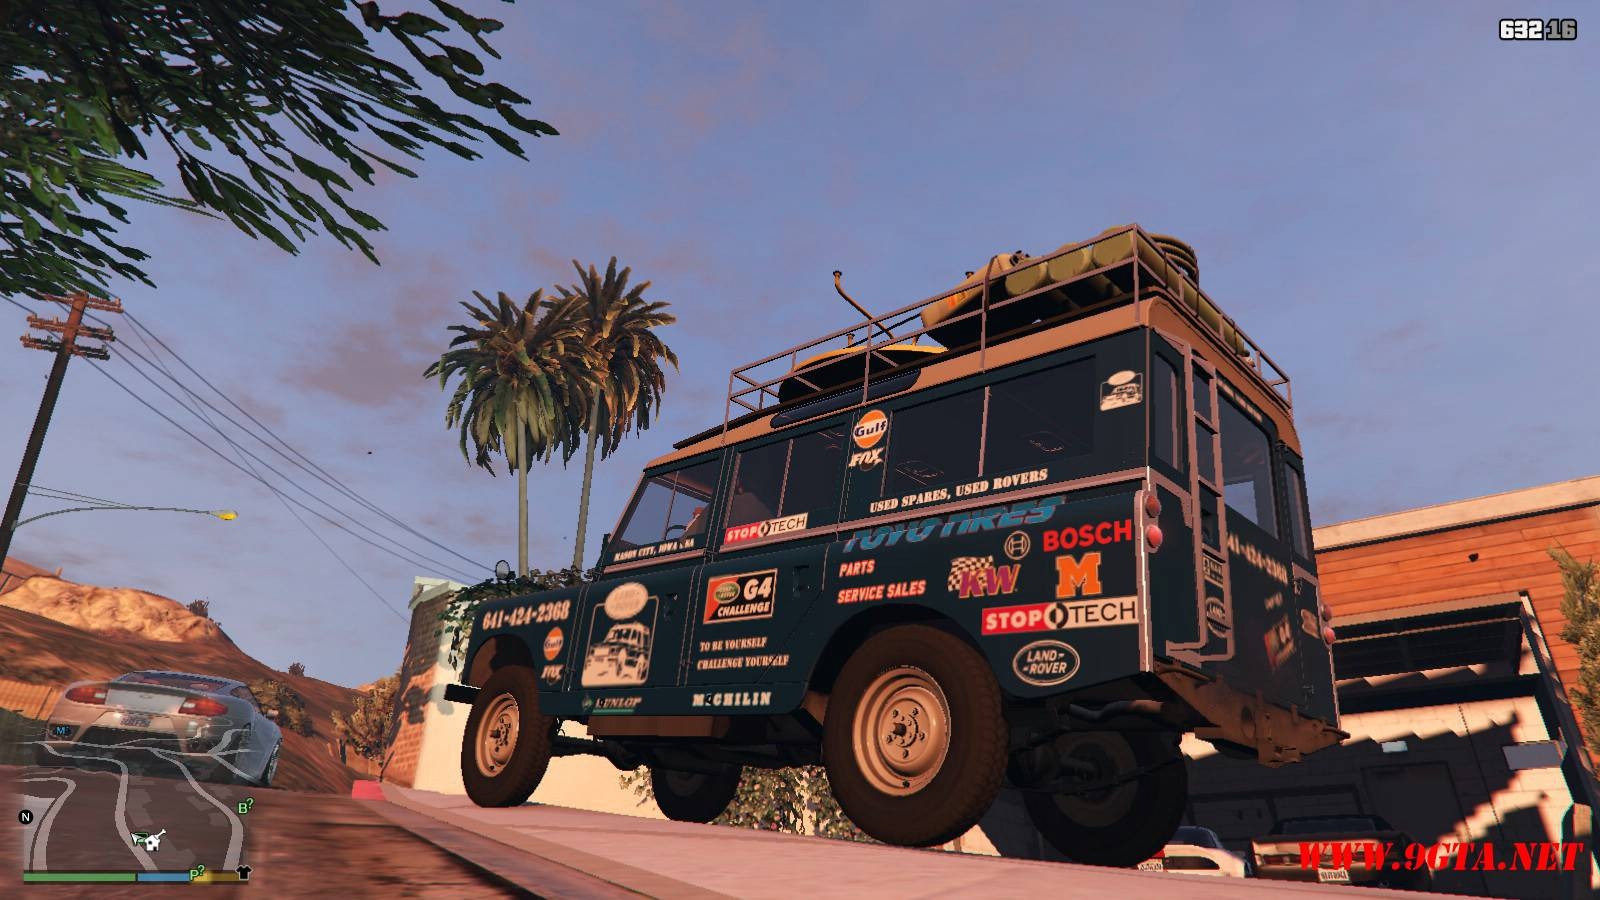 1971 Land Rover Series II Model 109A GTA5 Mods (14)